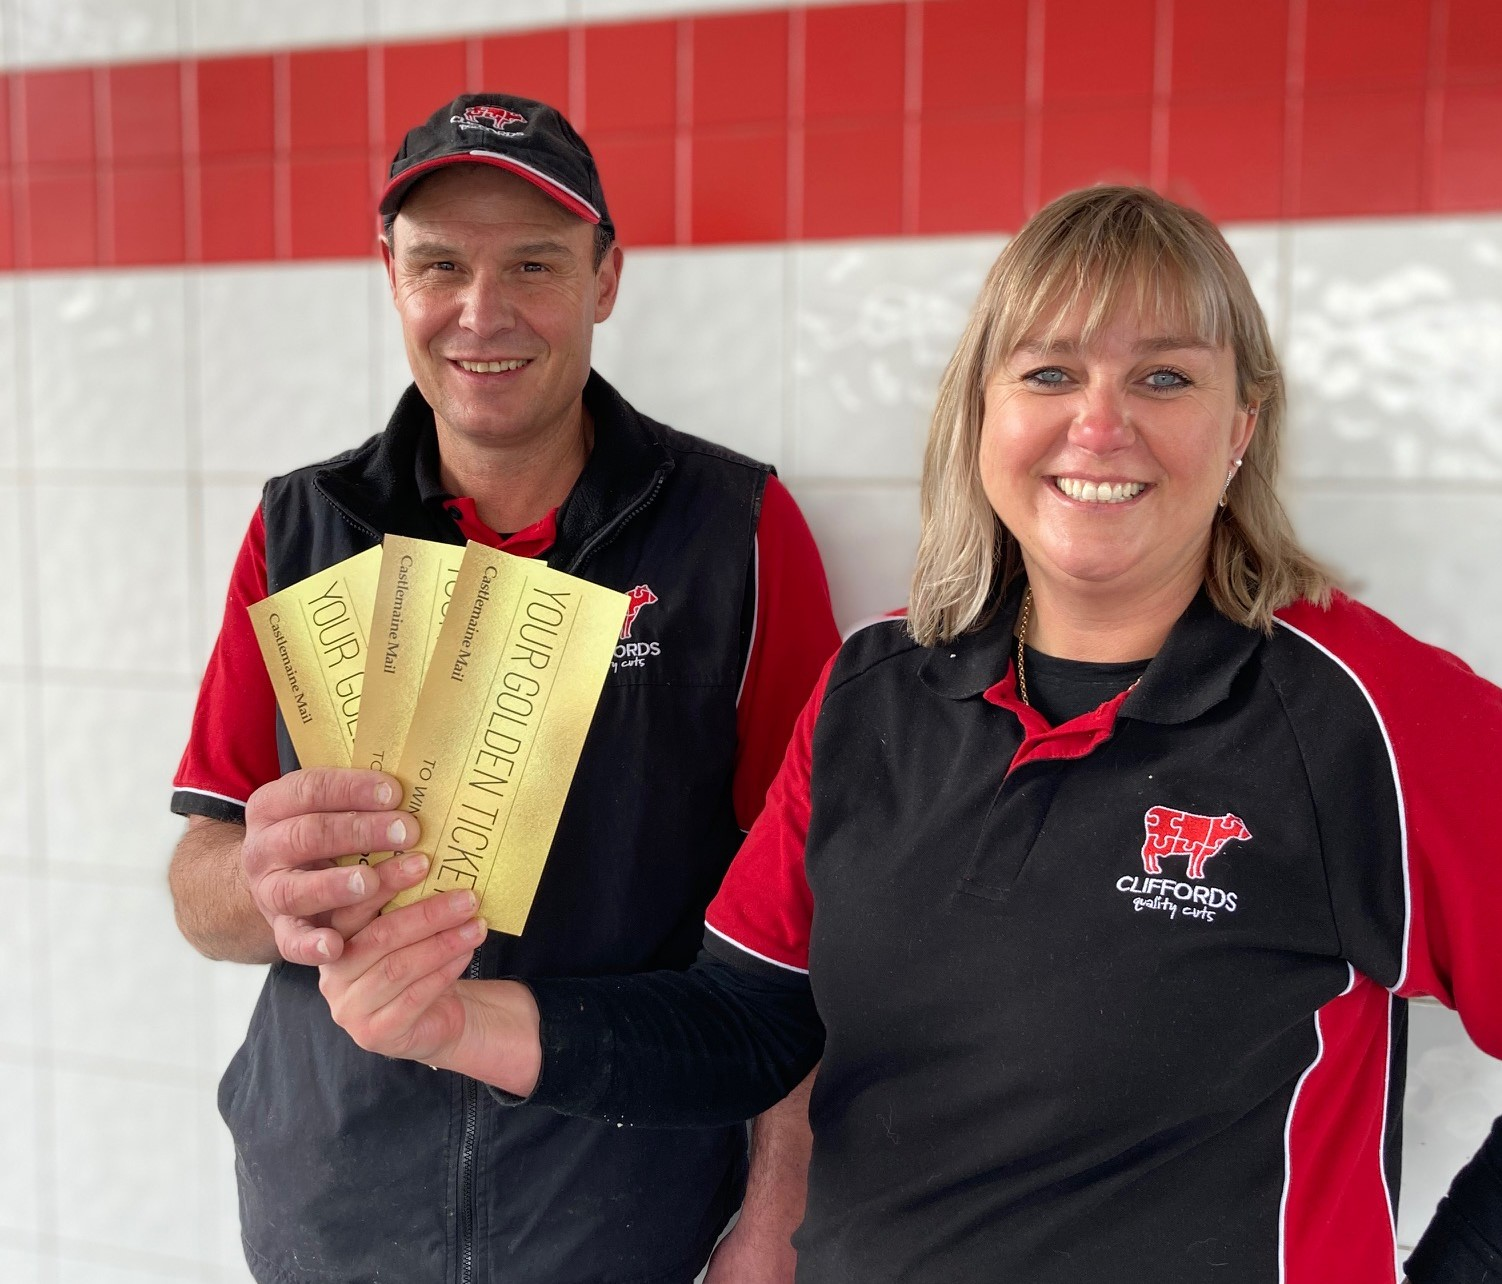 Join Steve and Leonie Clifford in our Golden Ticket promotion.